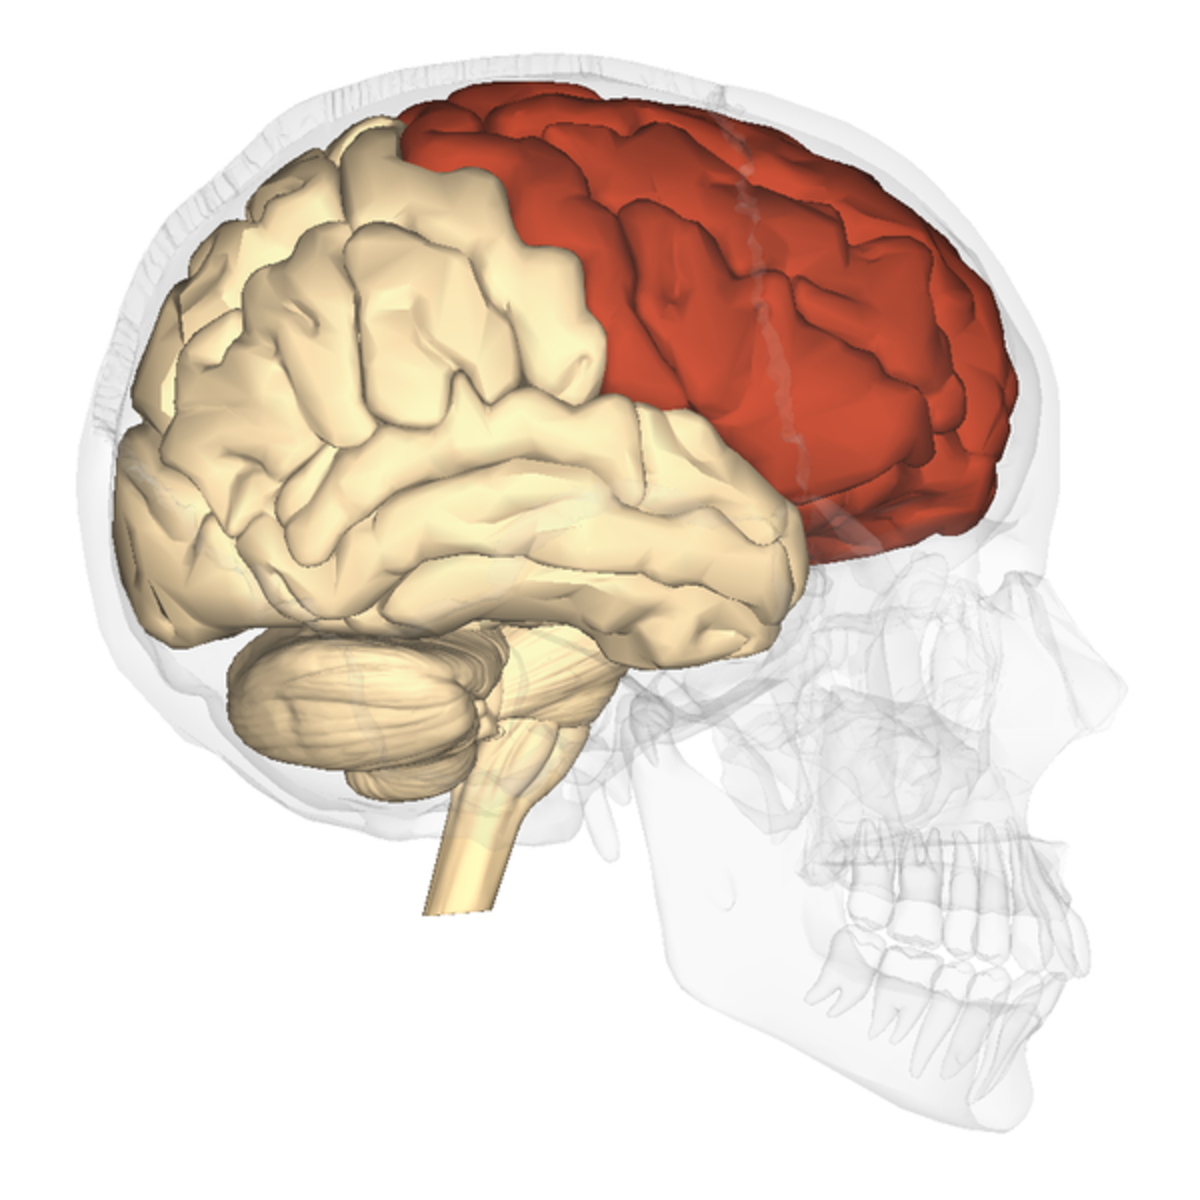 The frontal lobes of the human brain